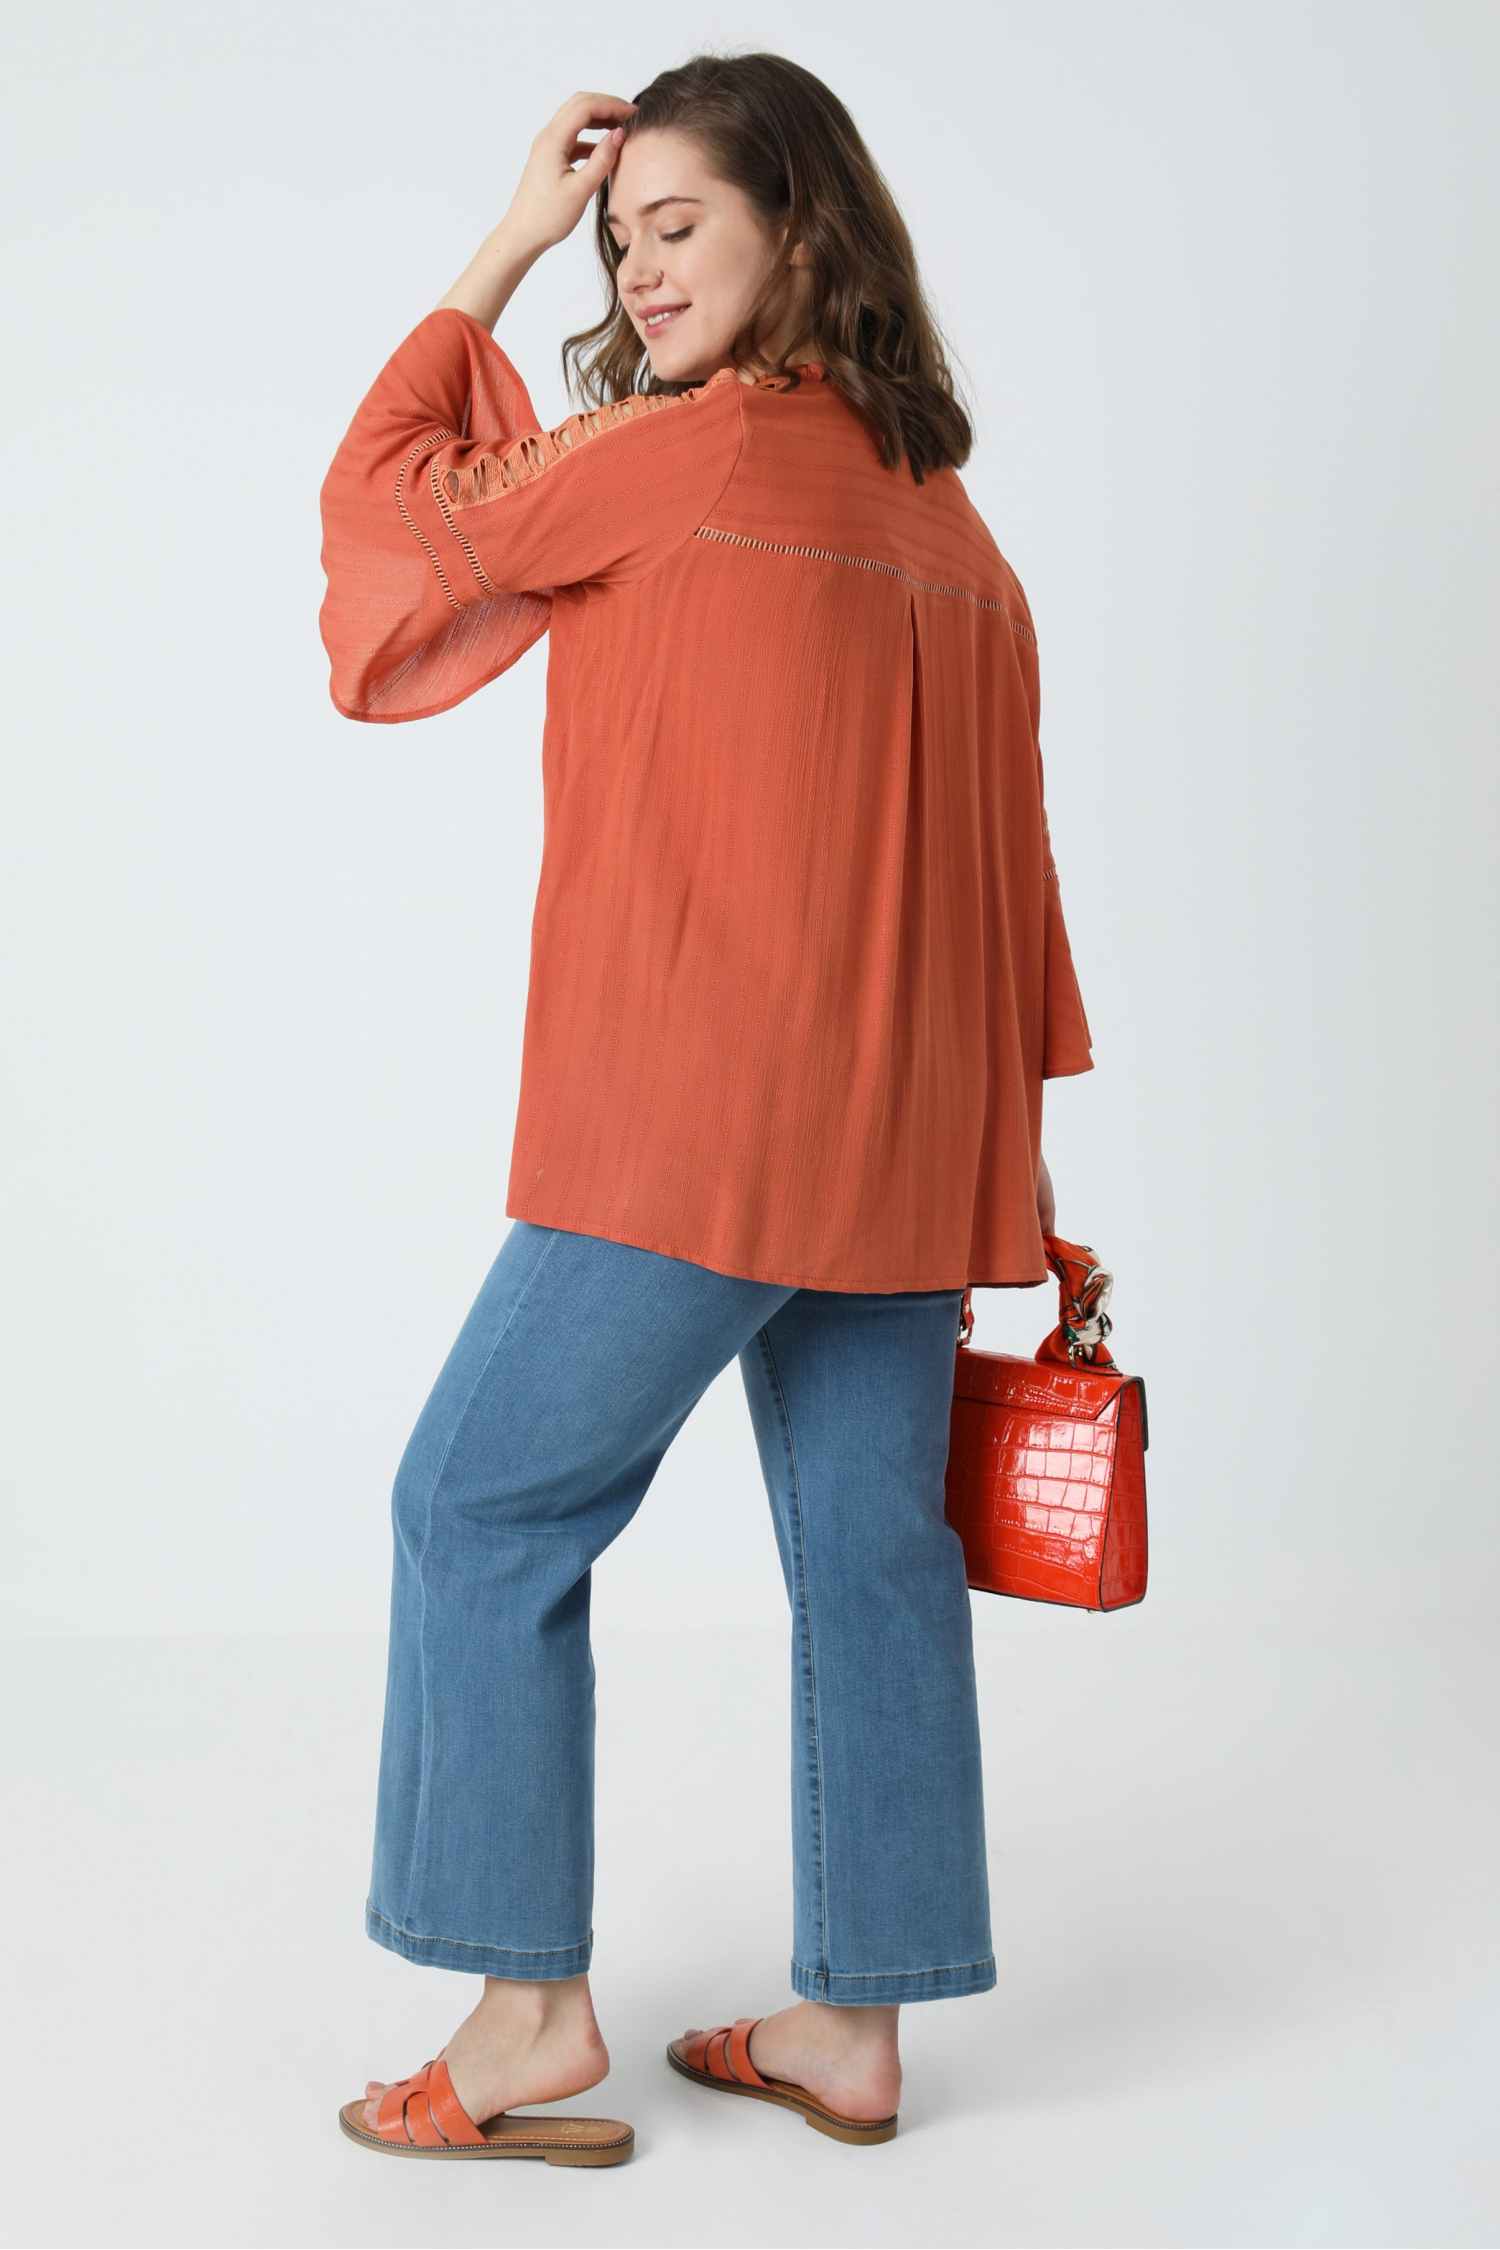 Plain blouse with decorative braid (expedition 10/15 March)